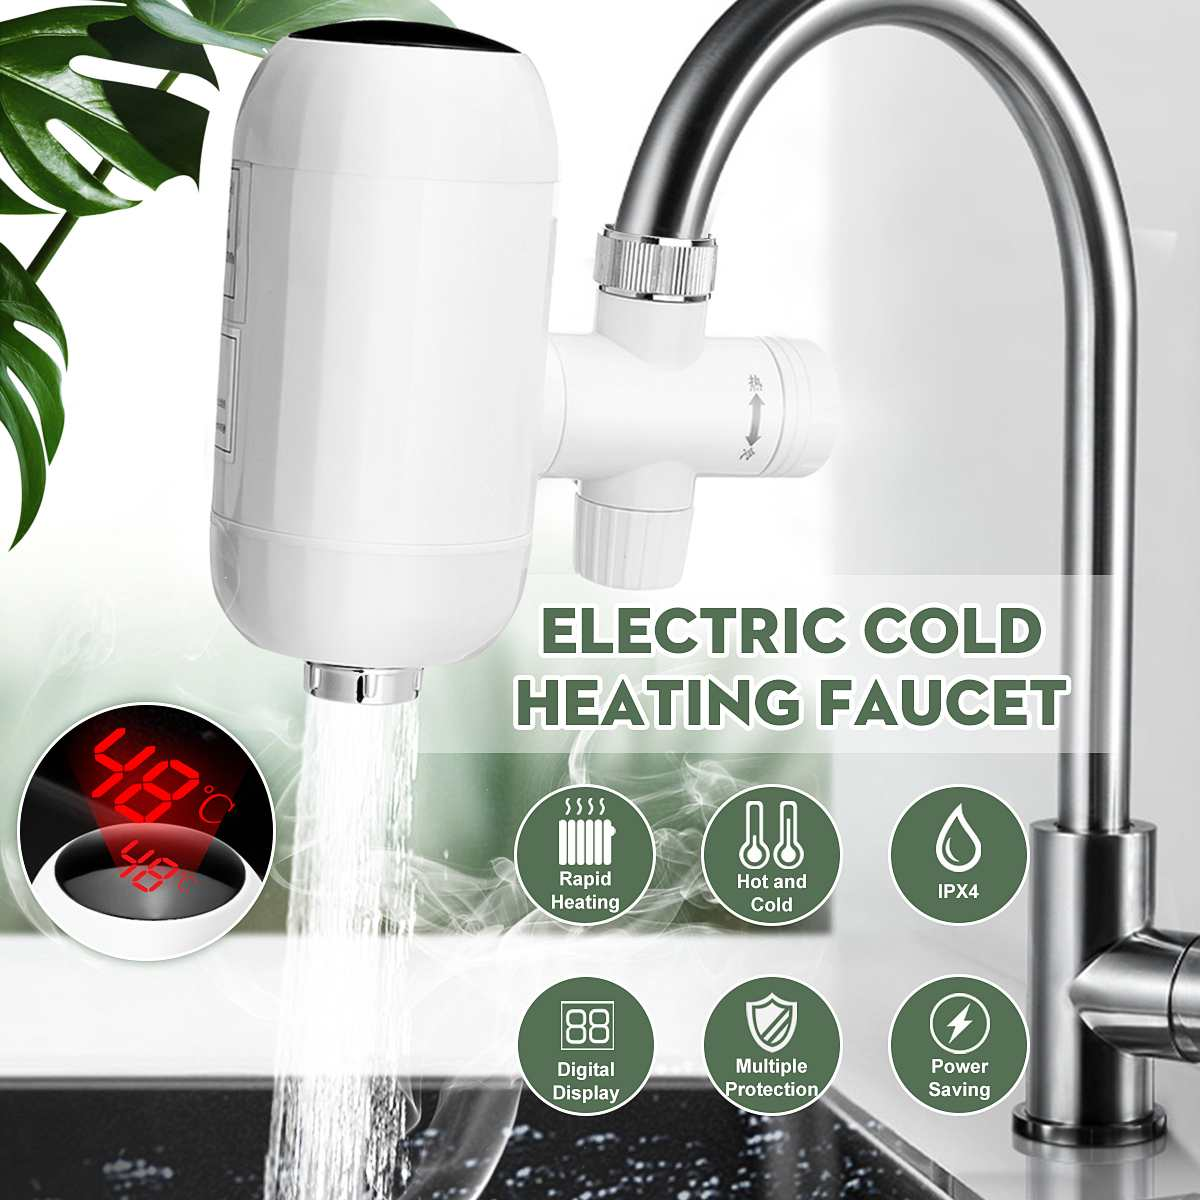 220V 3000W Instant Electric Faucet Tap Hot Water Heater Digital Display Kitchen Home Bathroom Faucet Tankless Water Heater Tap